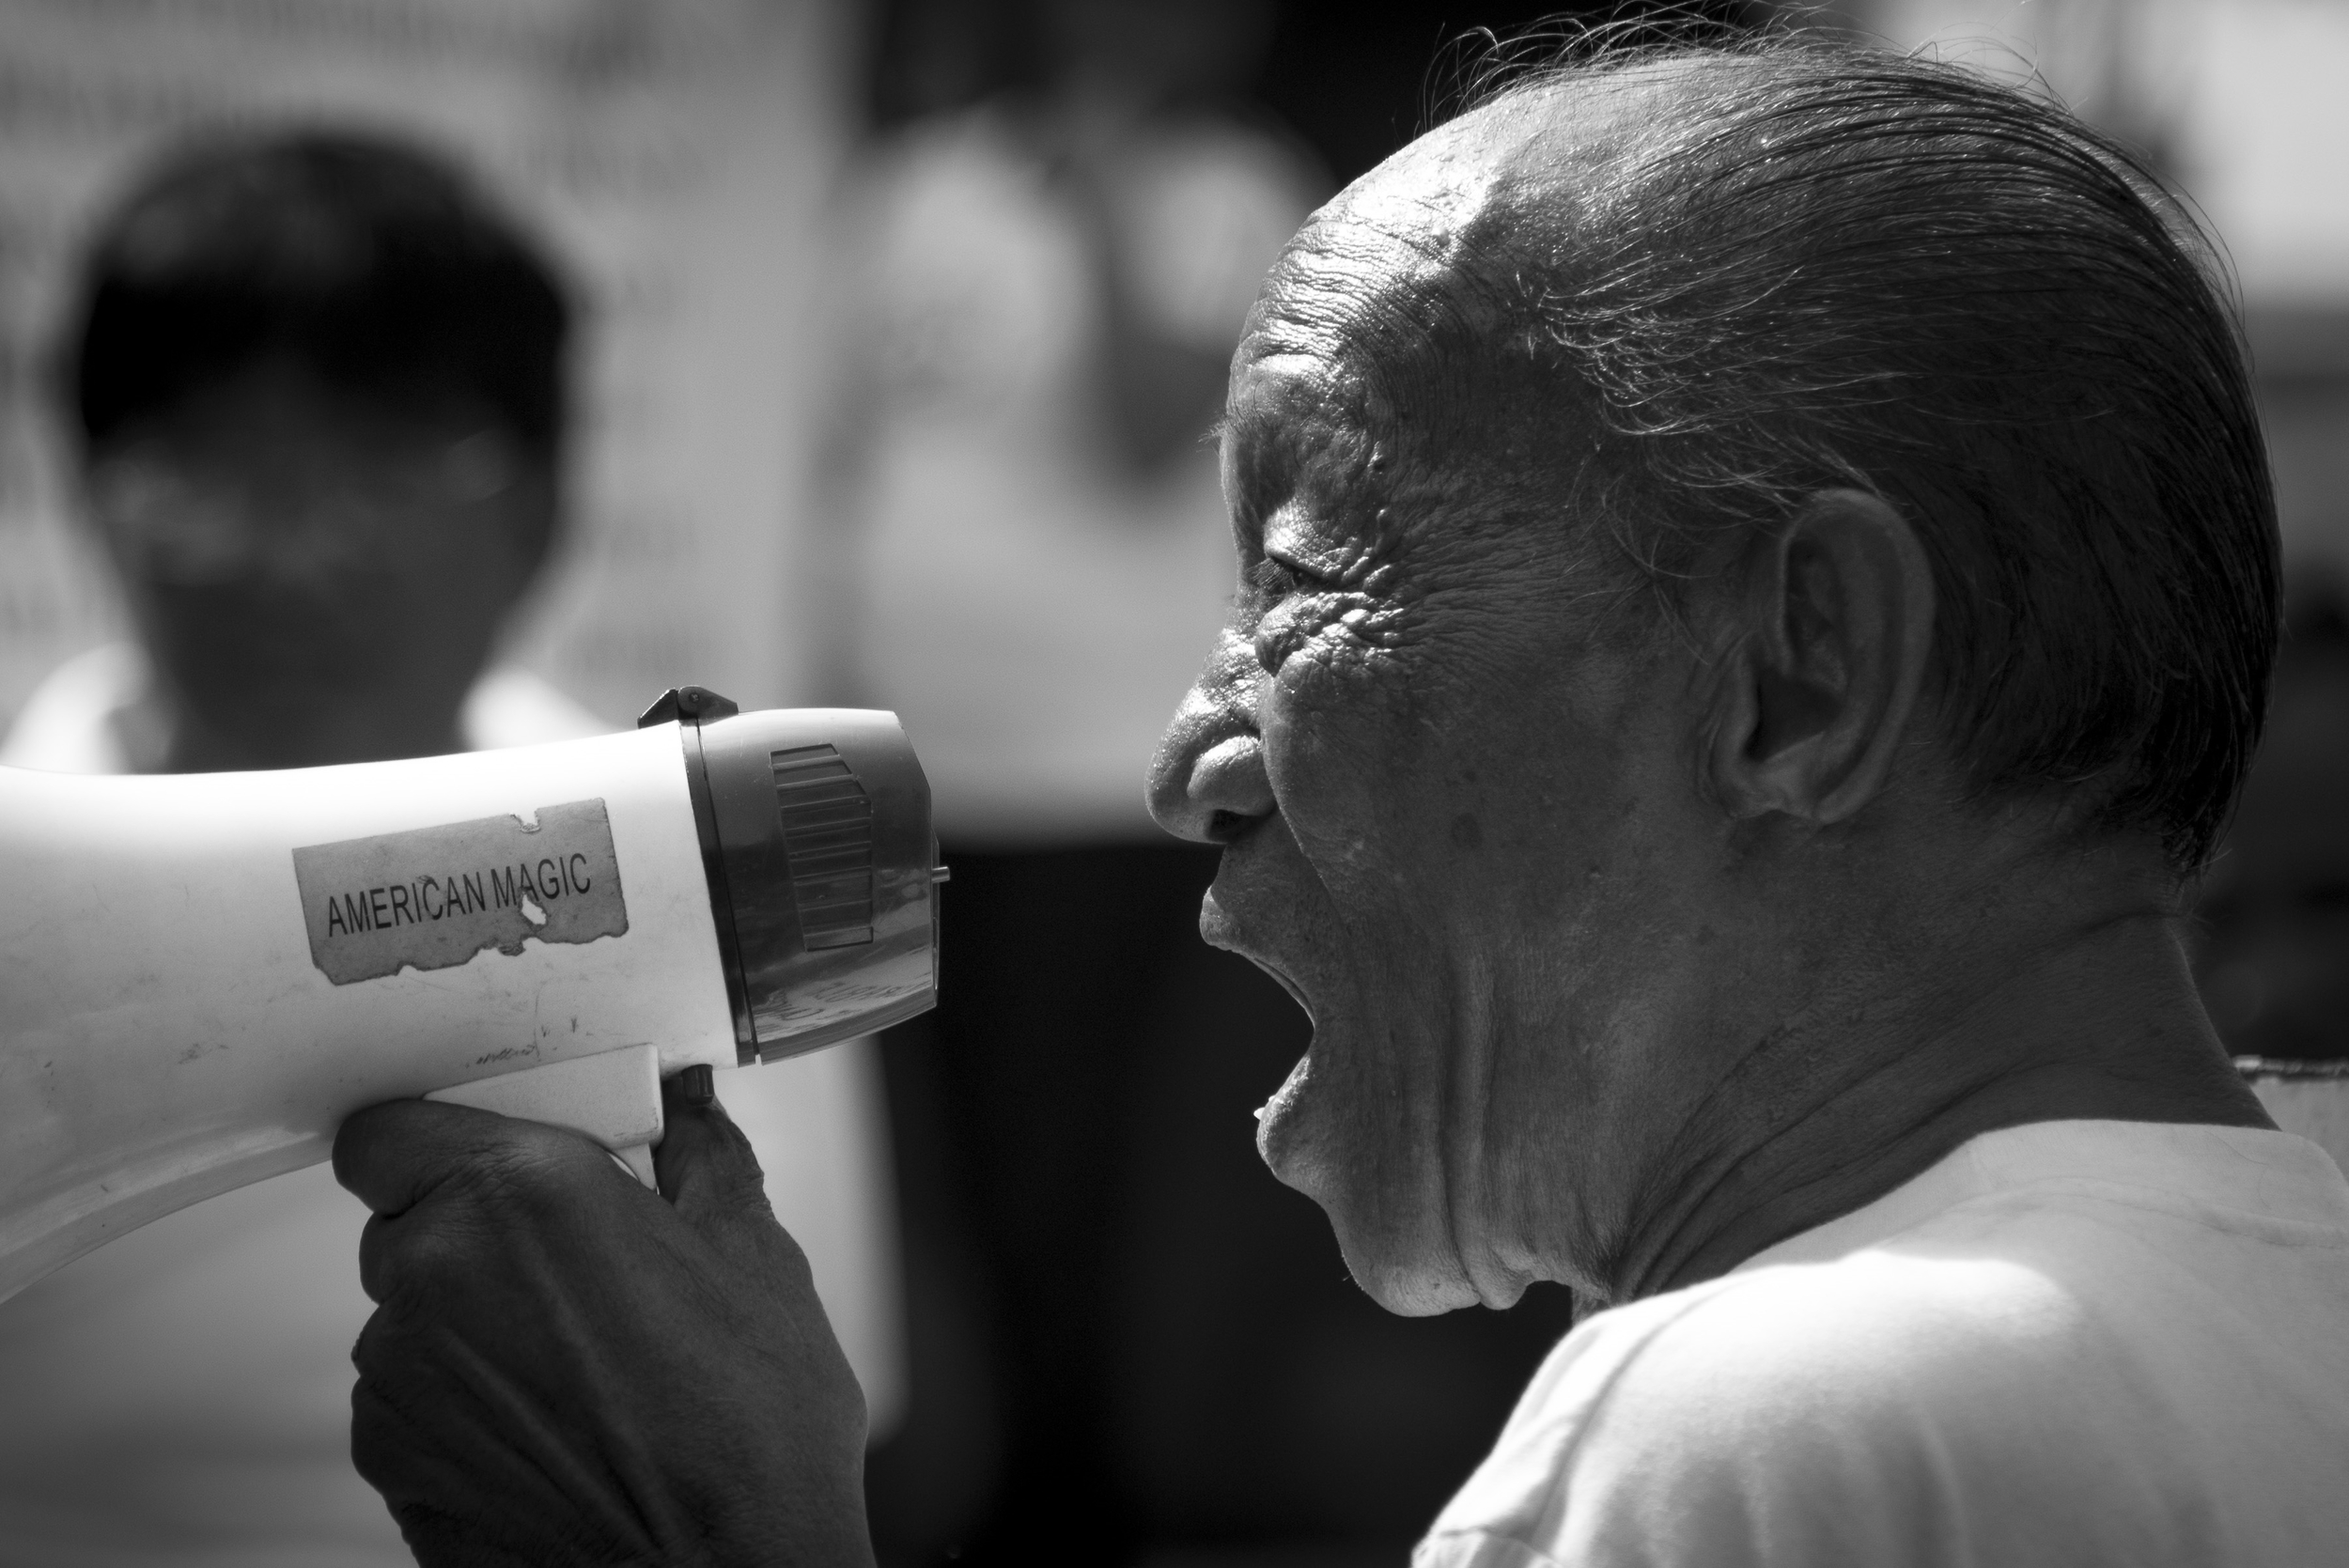 """On October 4th, Ayala Avenue was closed to traffic to allow the public to protest and criticise the government's """"Pork Barrel"""" Fund. Photojournalism is my first love, and to see this man speak while his grandchild stood by his side was overwhelming."""